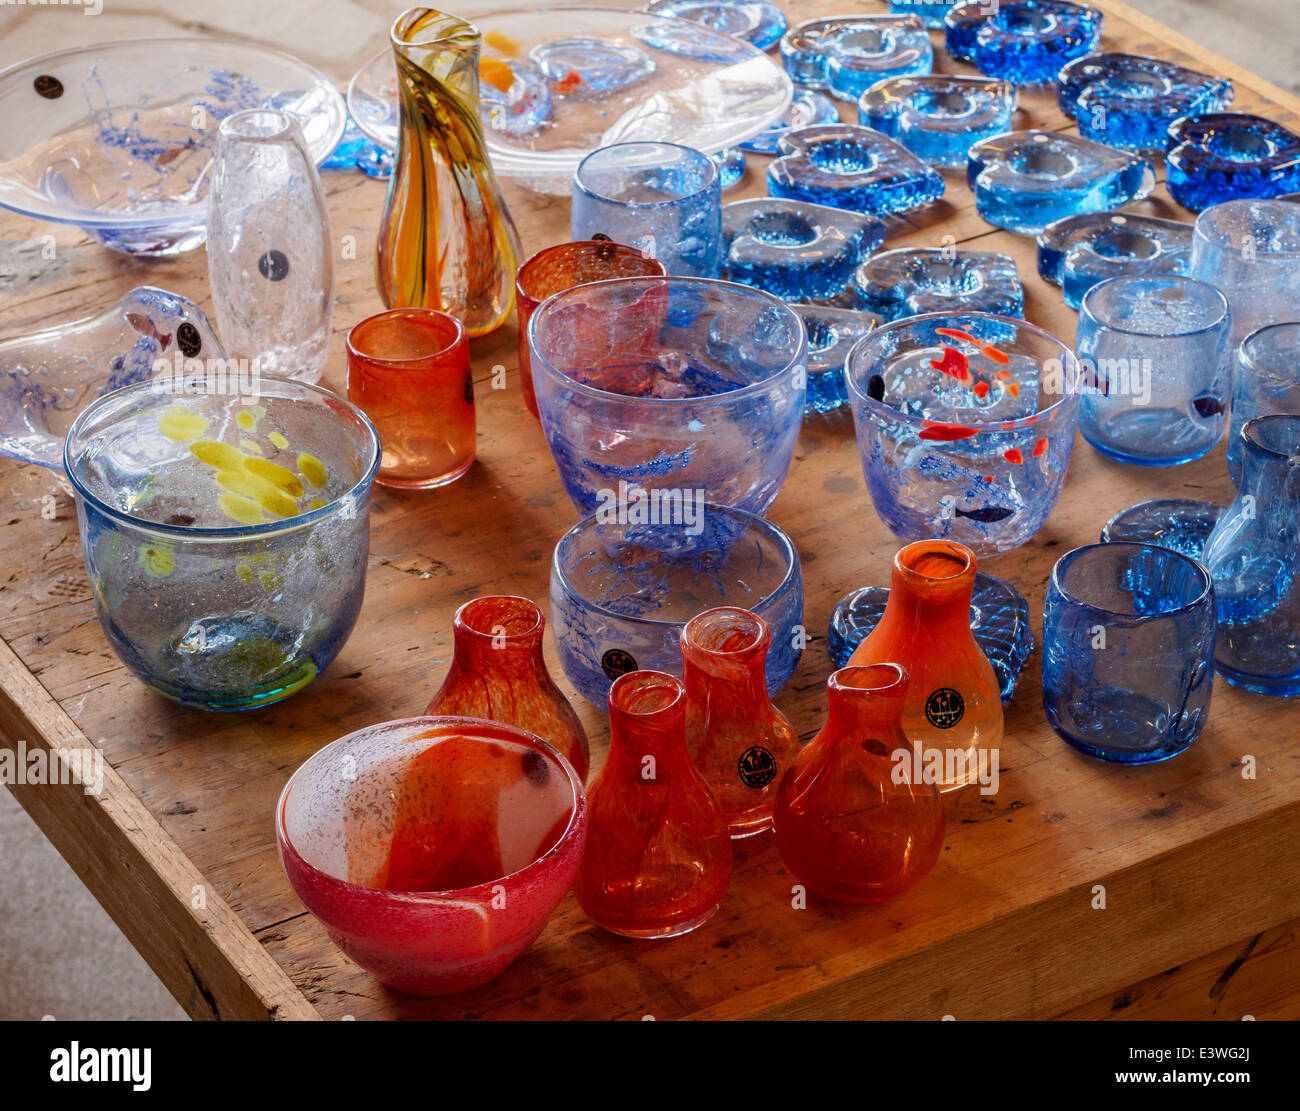 Artisan glass products made in the Glass Factory Vikten on the Lofoten islands are offered for sale. - Stock Image